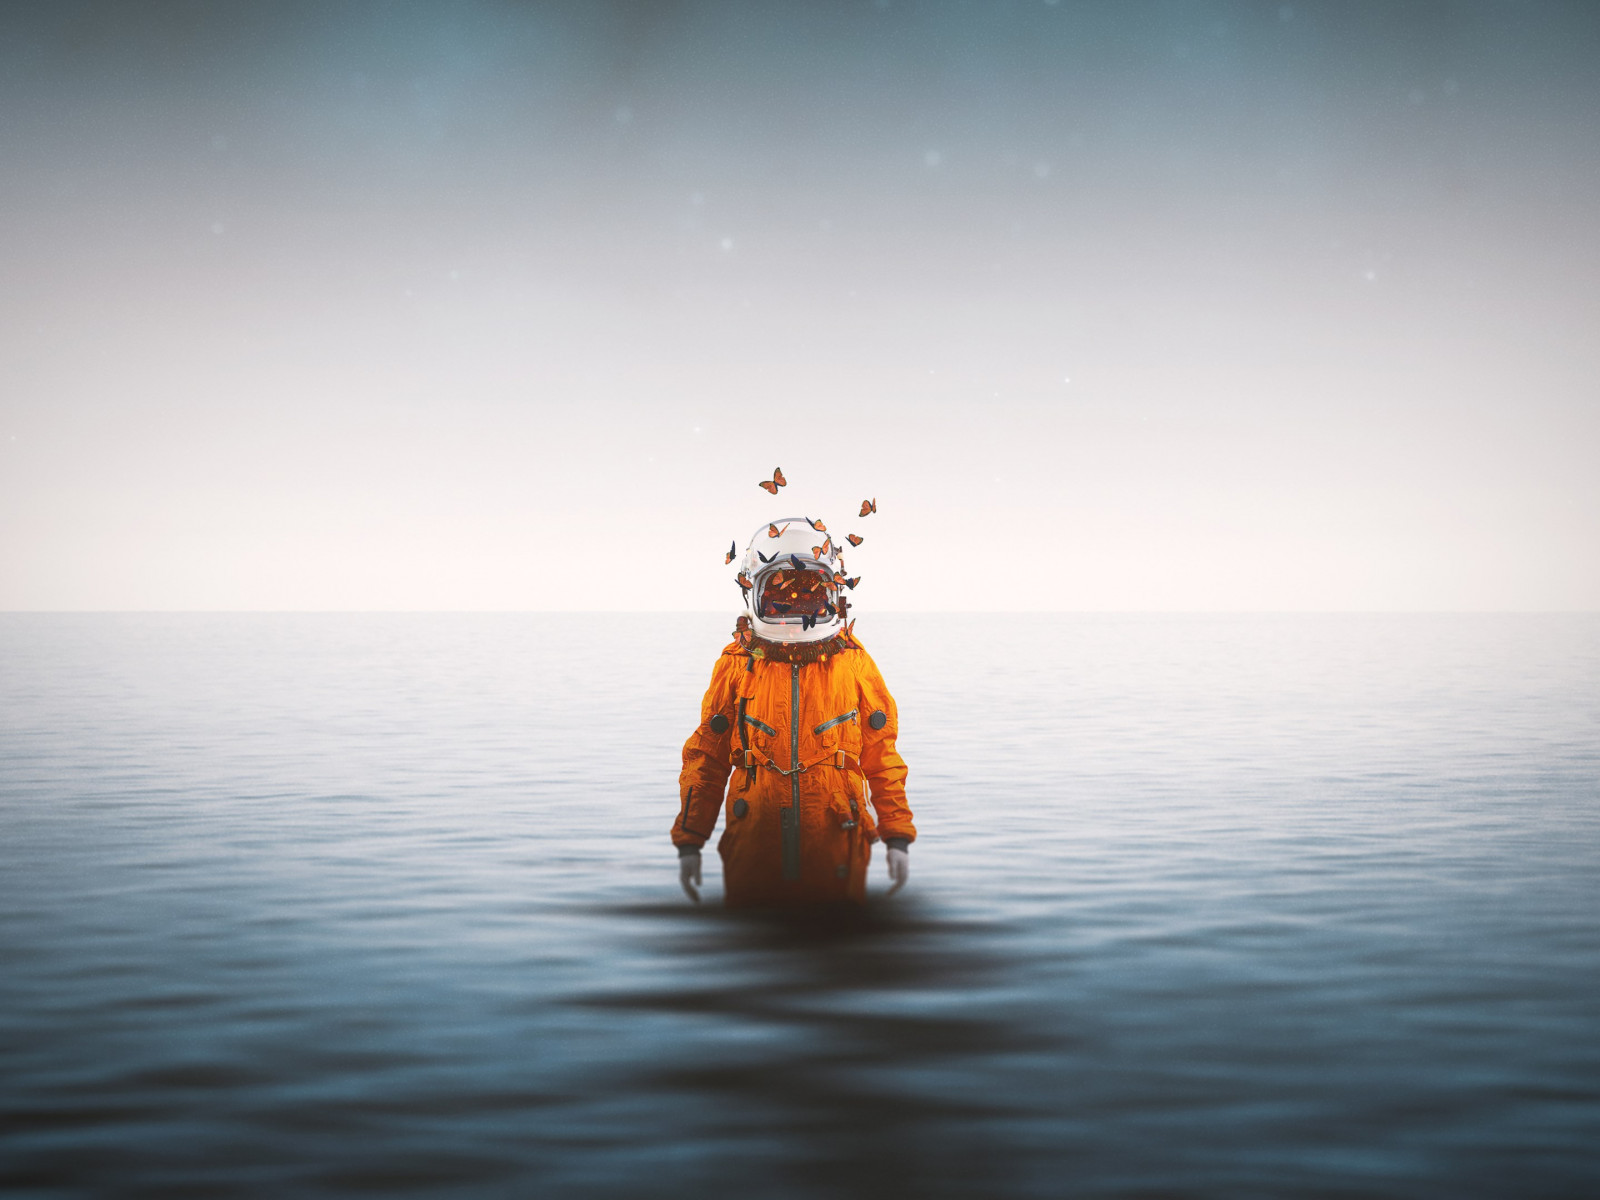 Lonely astronaut wallpaper 1600x1200